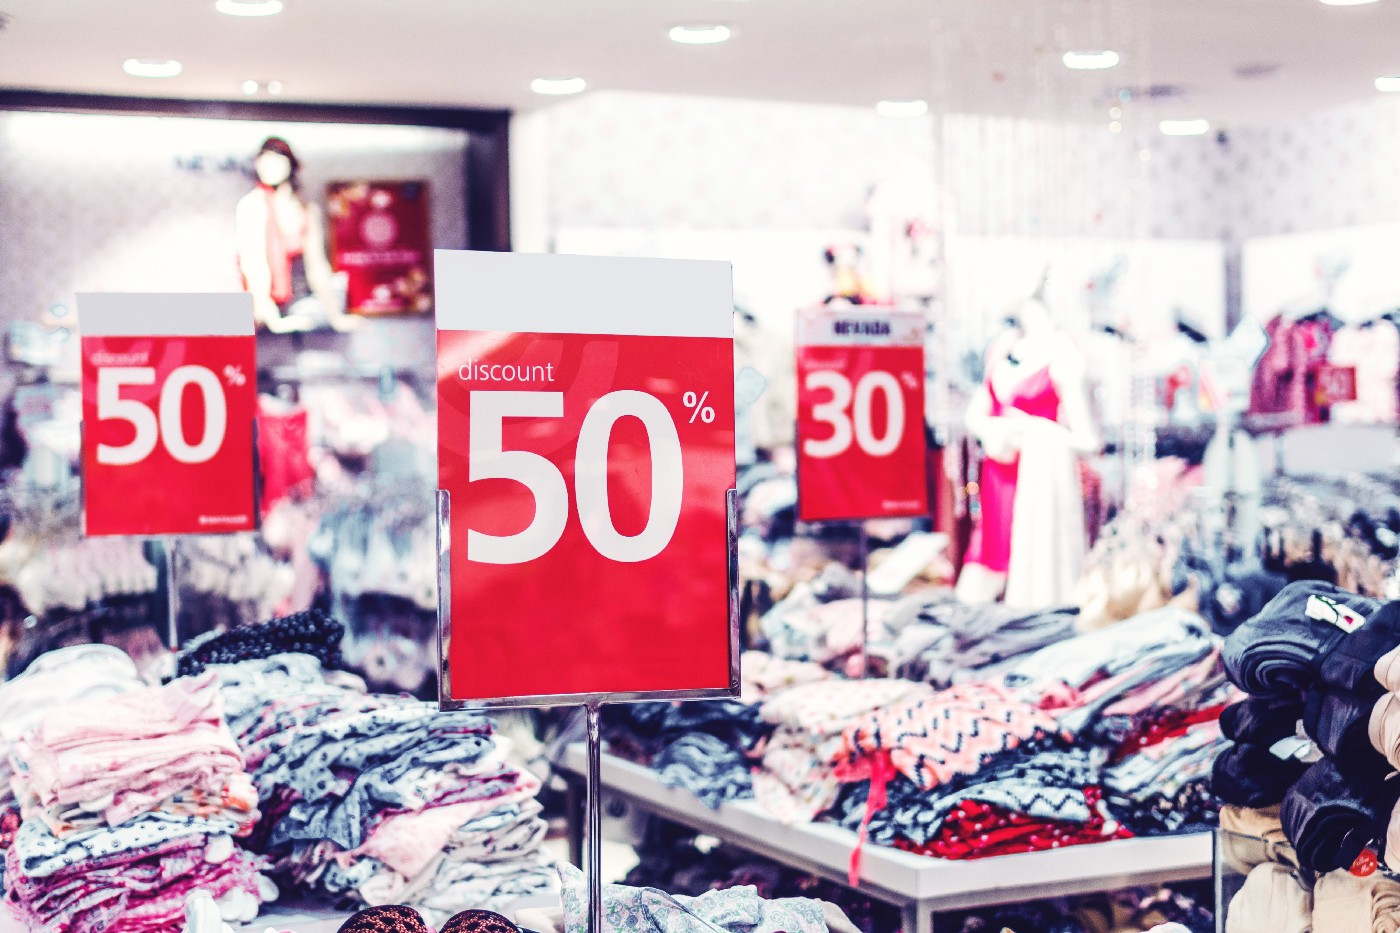 a clothing store with sale signs